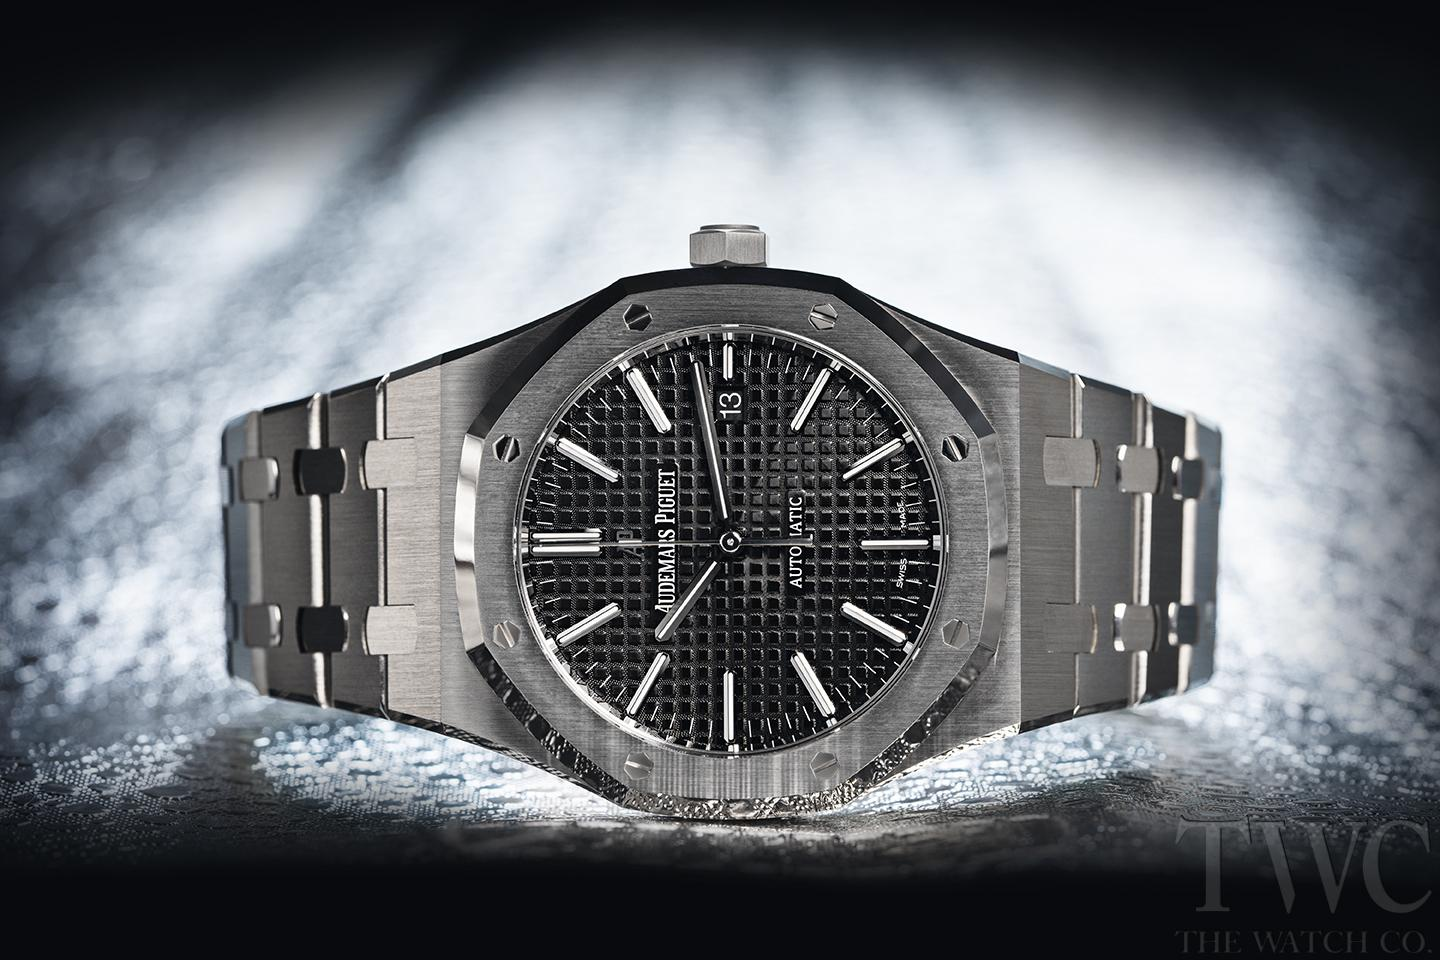 5 Top Watch Brands You Should Know About